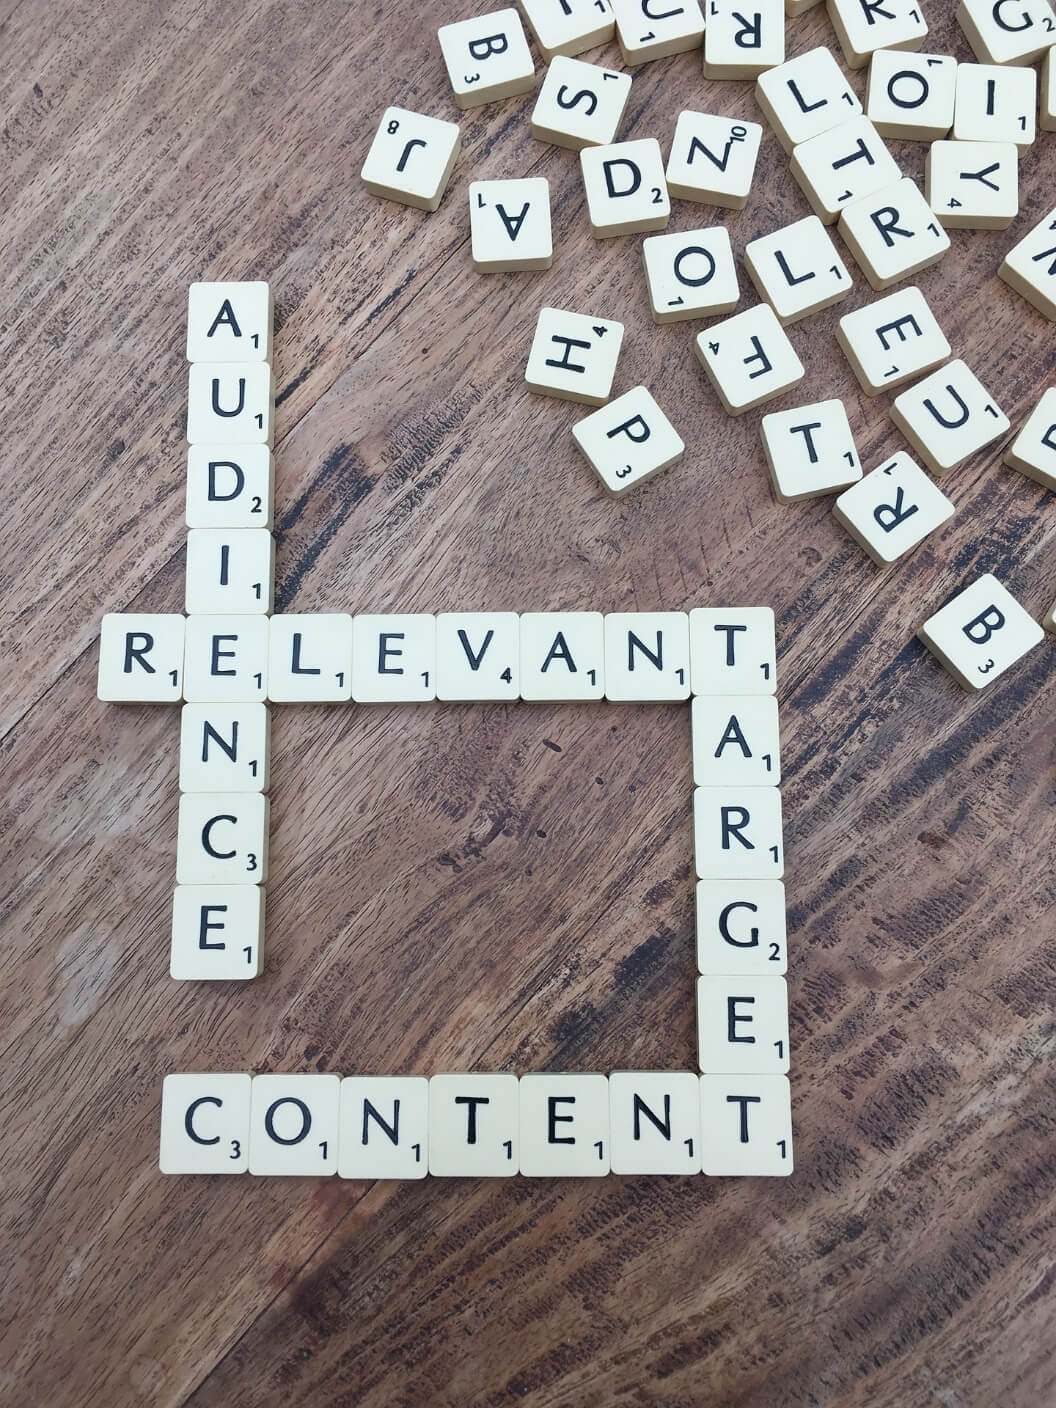 content marketing mistakes 2019